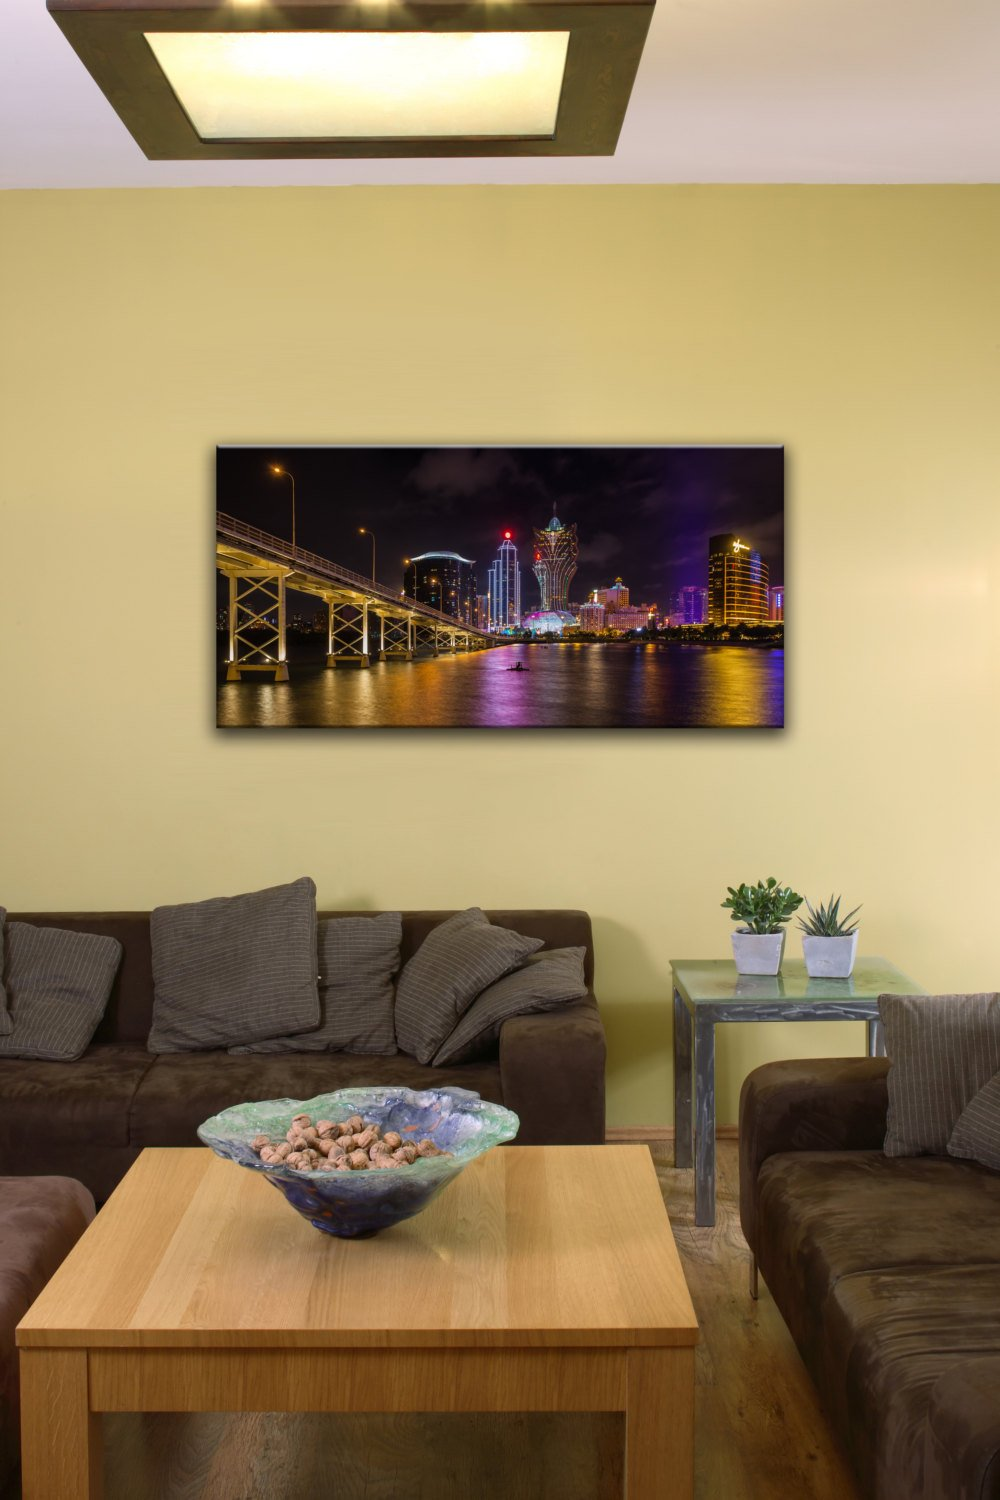 "Nam Van Lake, Macau (10"" x 20"") - Canvas Wrap Print"